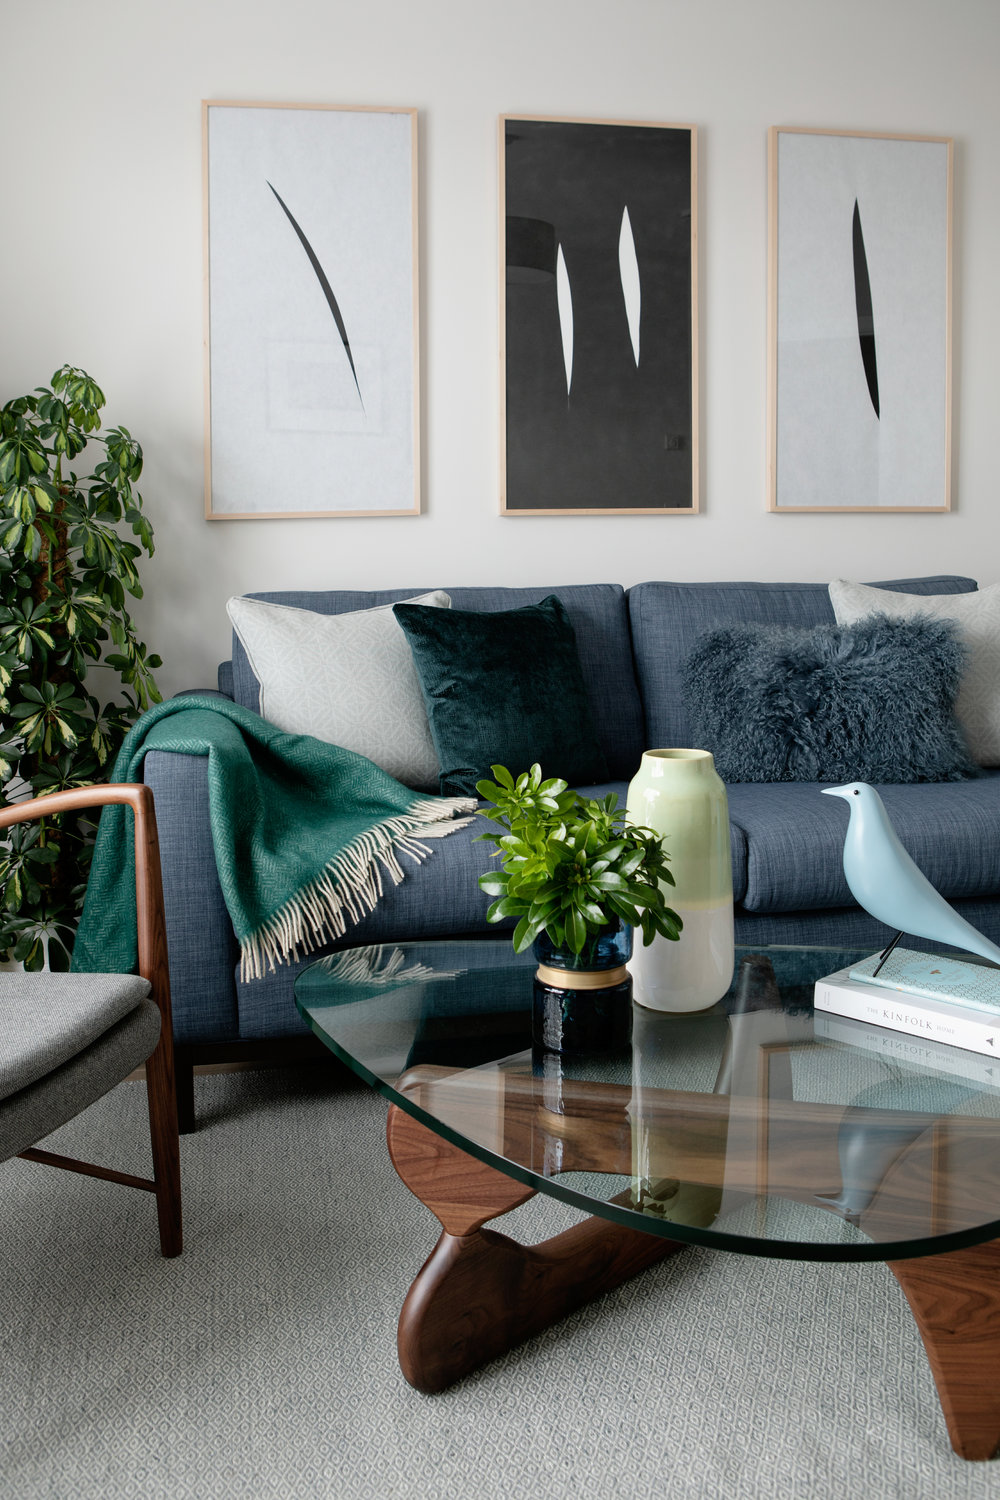 CA Design collaborated with Cairn Homes PLC on a recent housing project. Featured here is our  Noguchi-style Coffee Table  in walnut, our blue  Eames-Style House Bird  and  Finn Juhl Lounge Chair  upholstered in medium grey fabric. Photo credit:  Ruth Maria Photography.